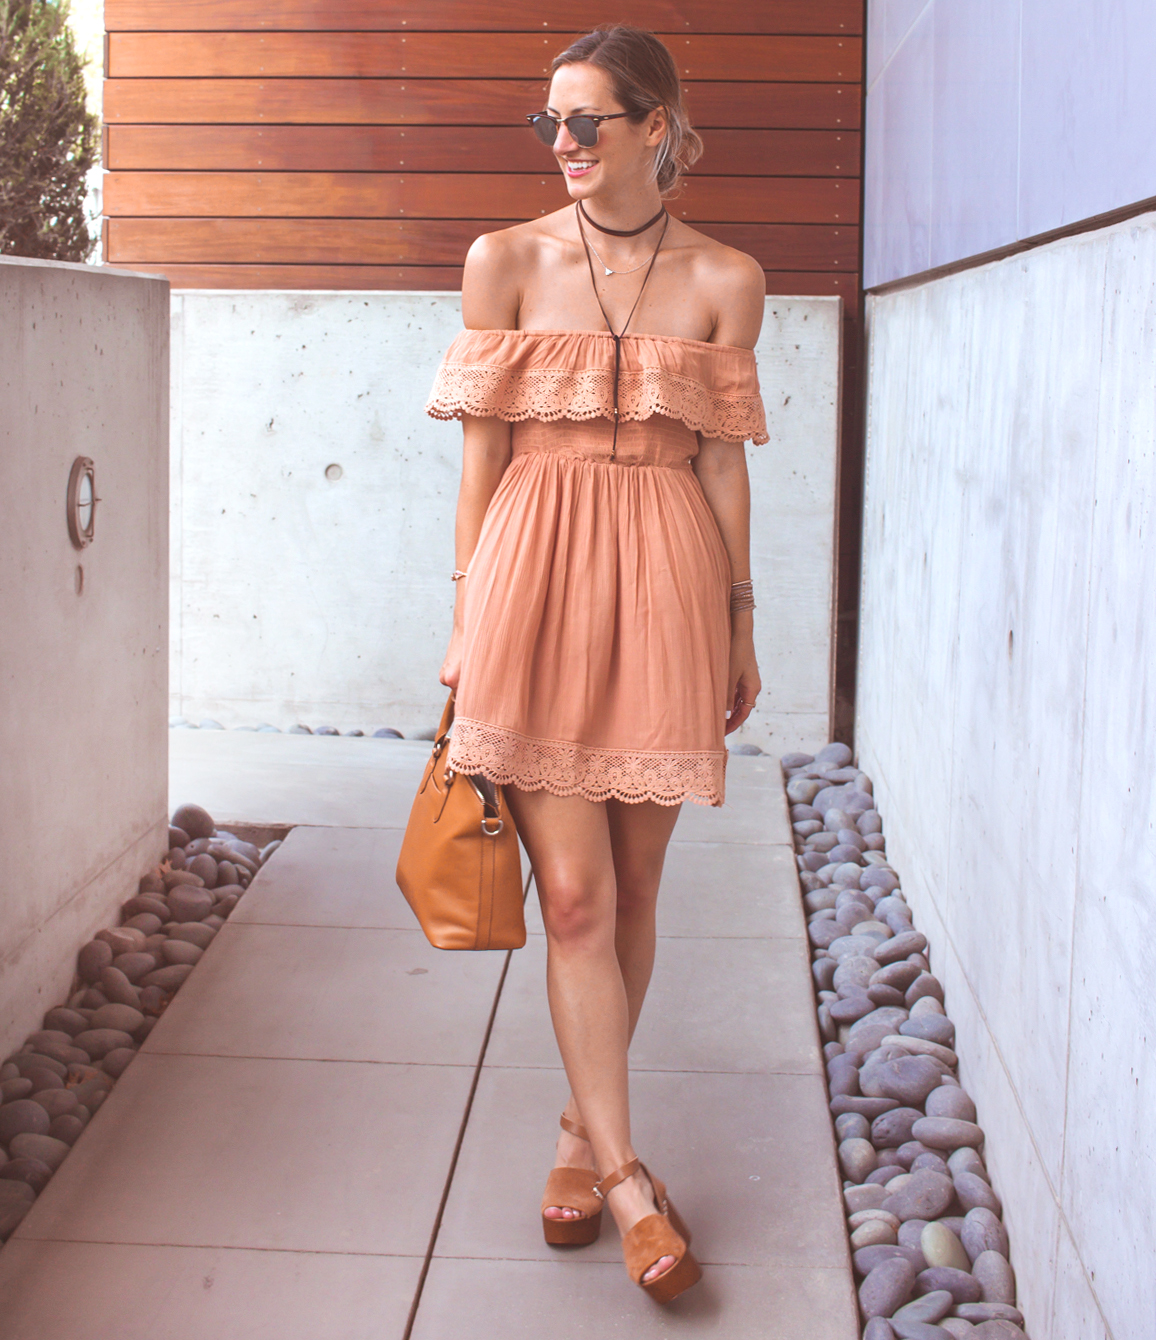 livvyland-blog-olivia-watson-austin-texas-fashion-lifestyle-blogger-peach-coral-lace-off-shoulder-dress-platform-wedges-summer-outfit-7